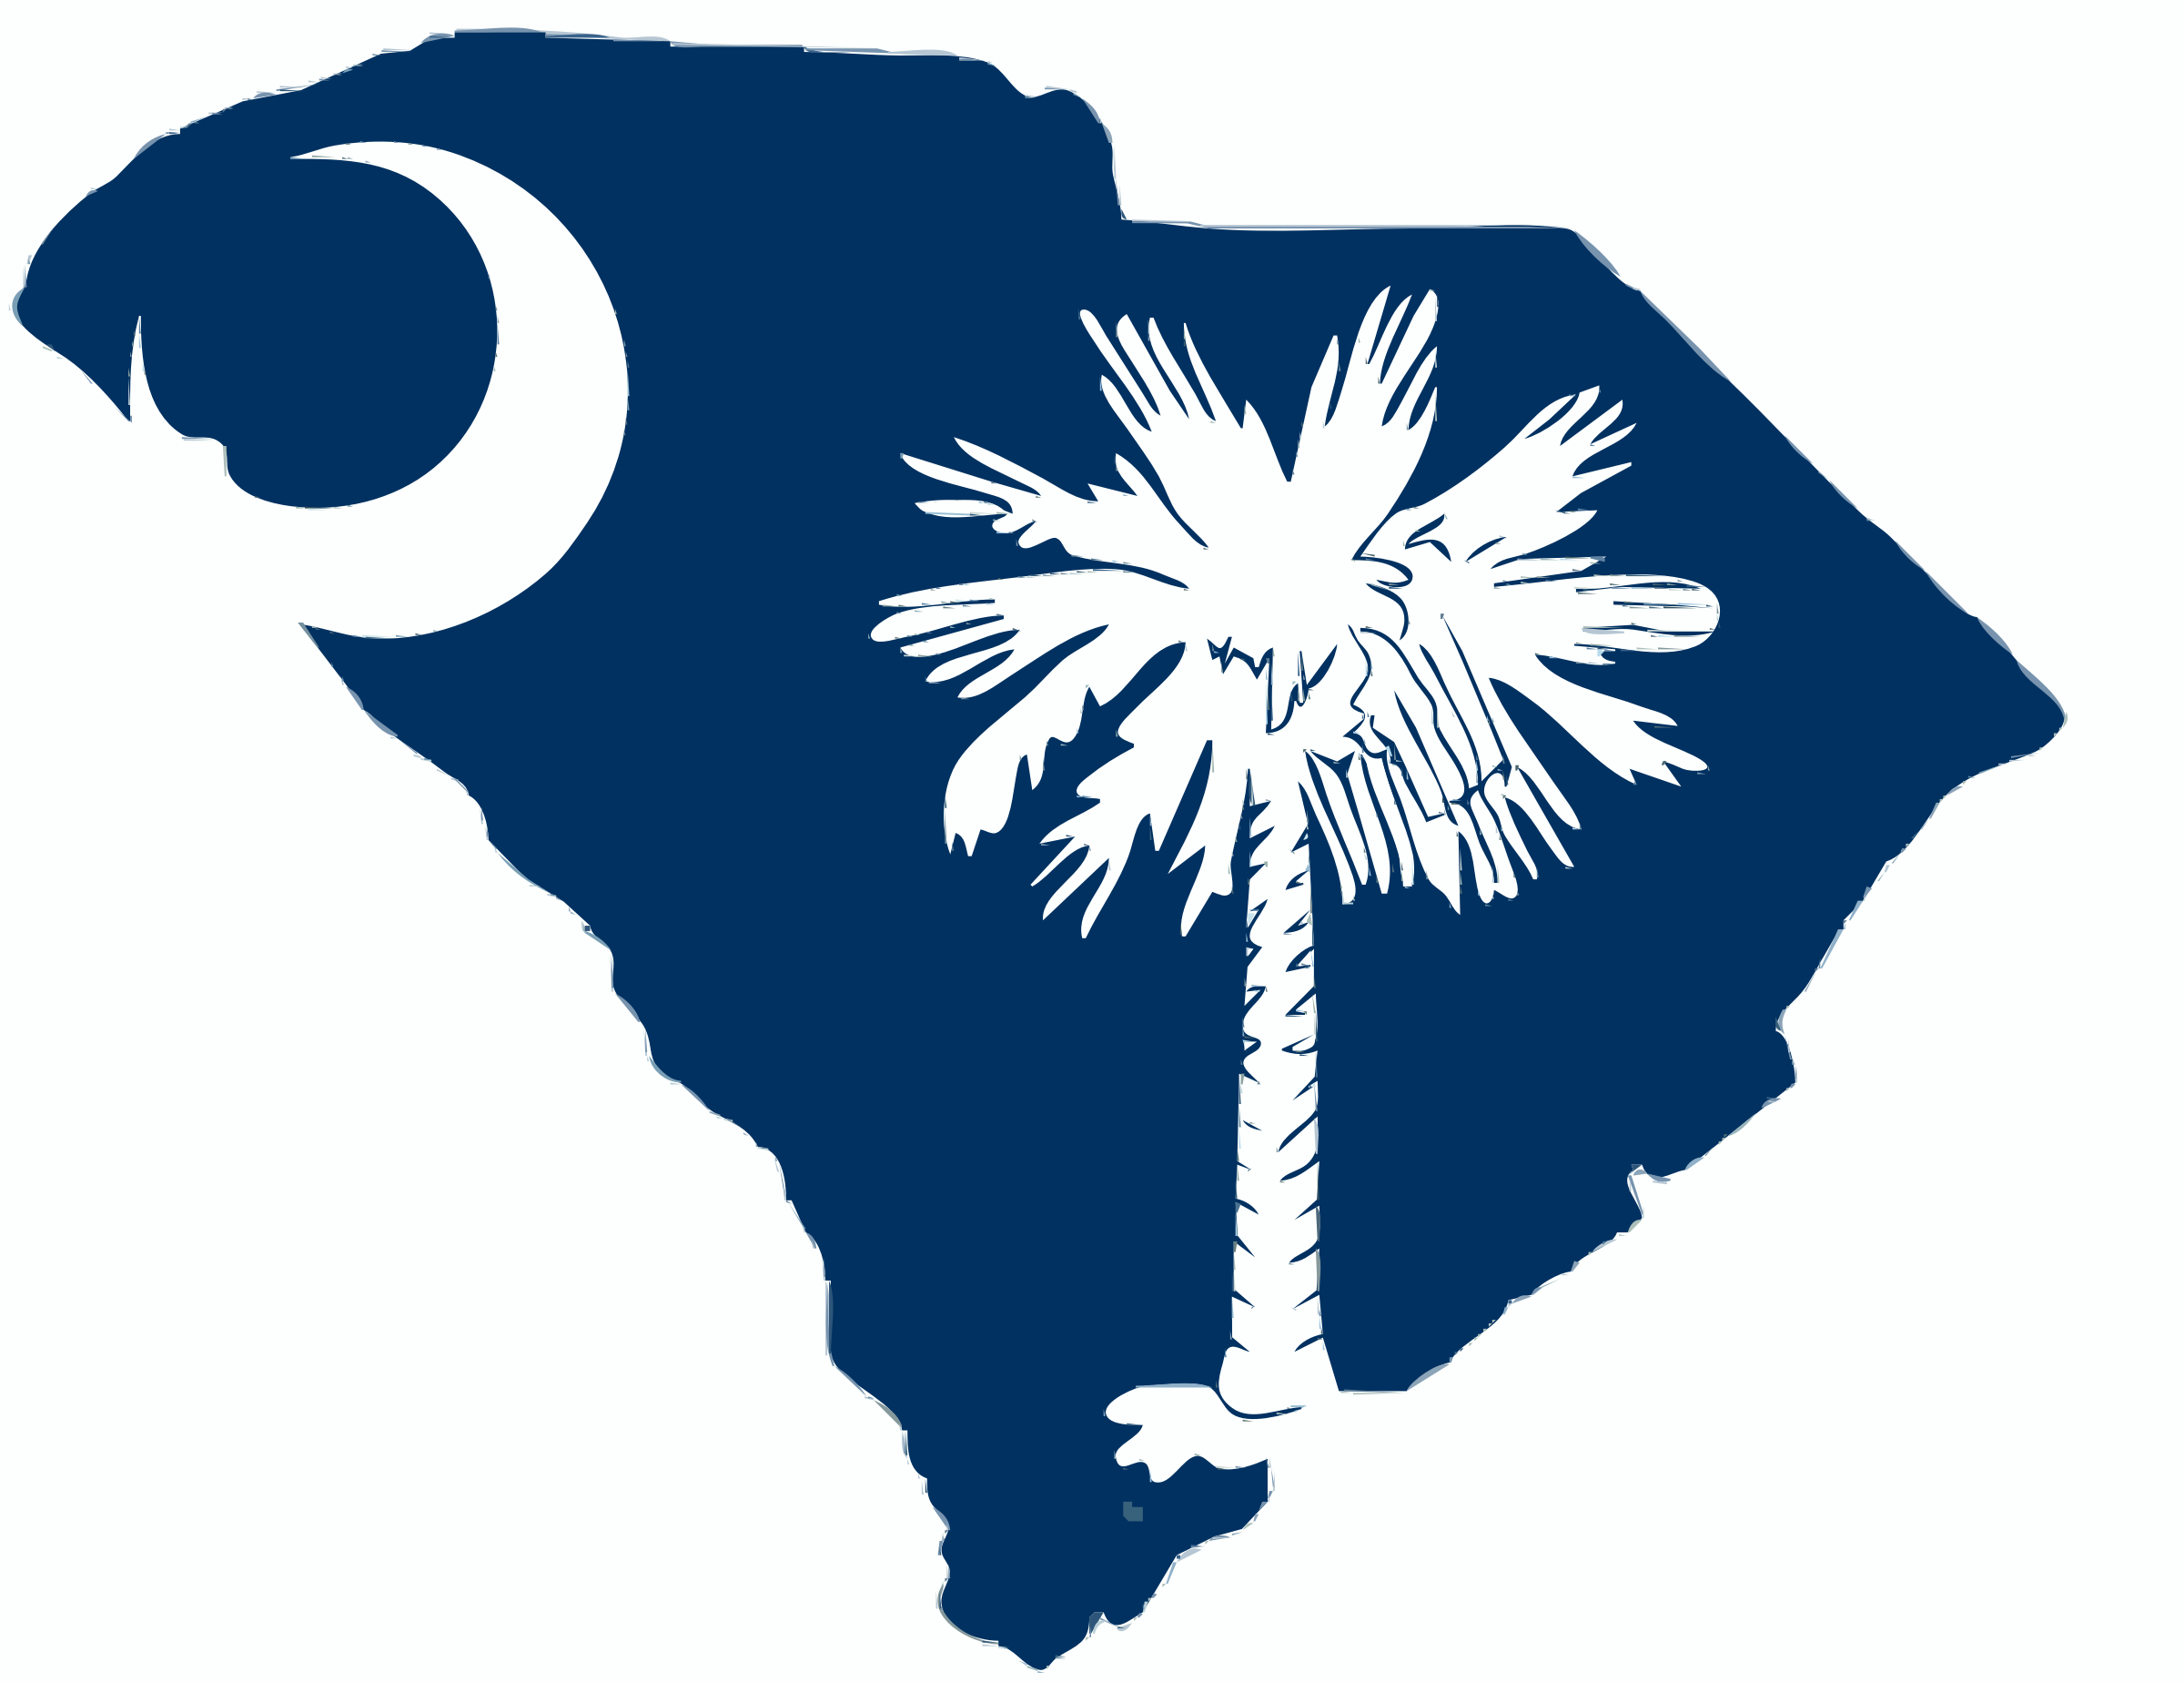 South Carolina by Arohletter1